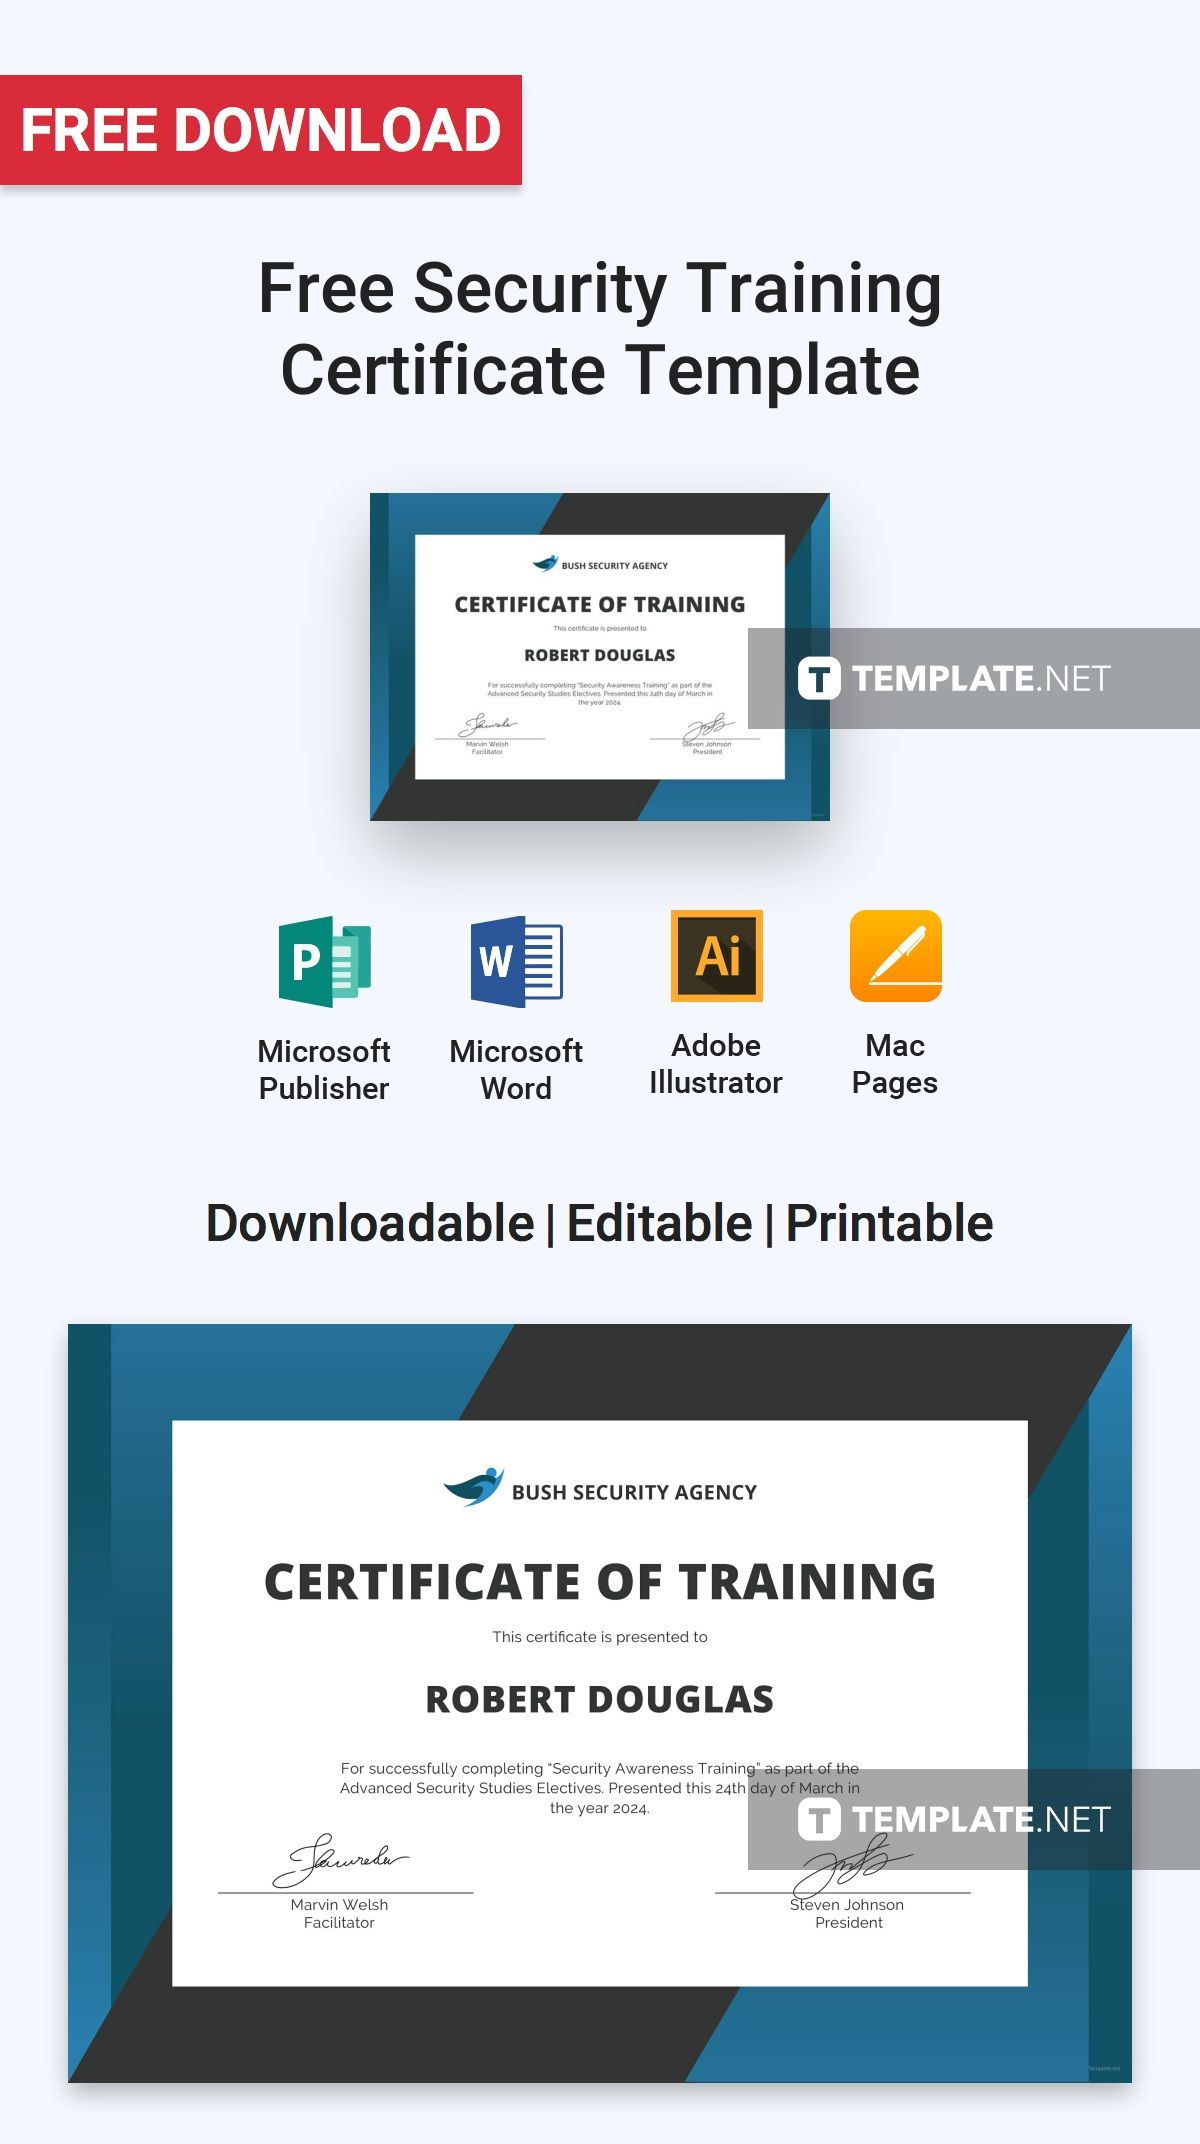 Free security training certificate free certificate templates free security training certificate free certificate templates pinterest training certificate certificate and template maxwellsz